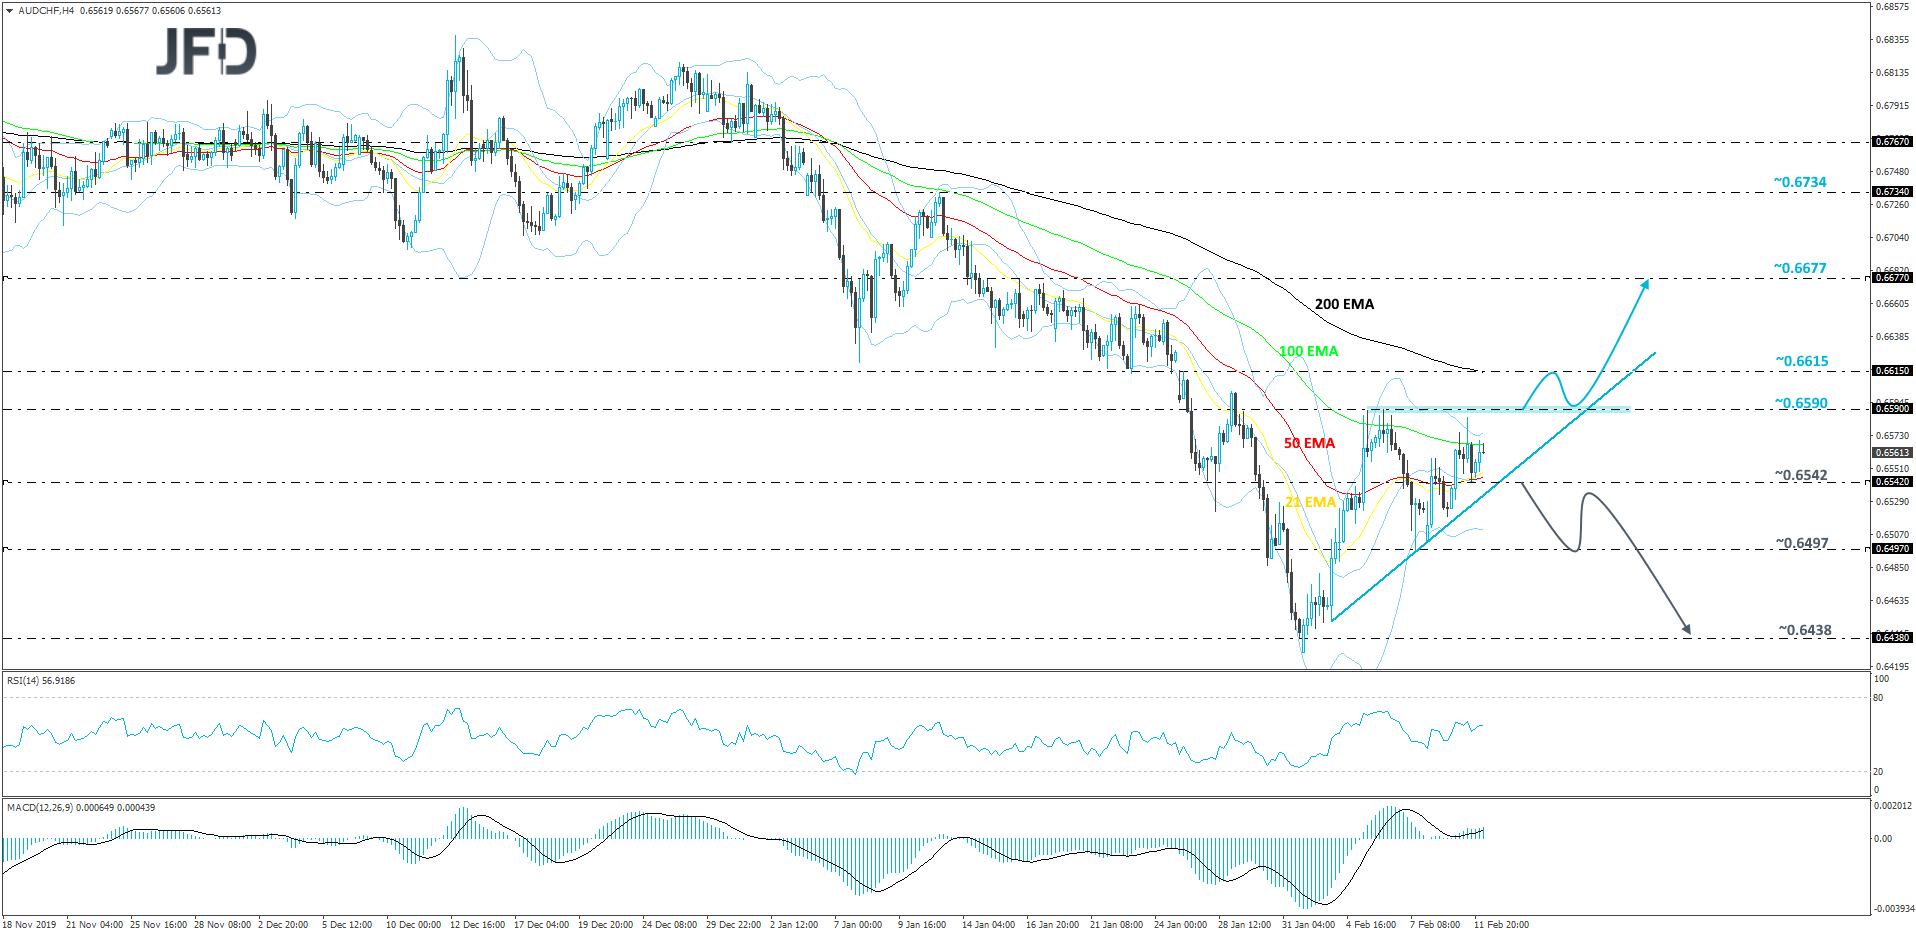 , Risk-on Trading Continues, Powell Acknowledges Virus Risks, NZD Rallies on RBNZ, Nice Bitcoins